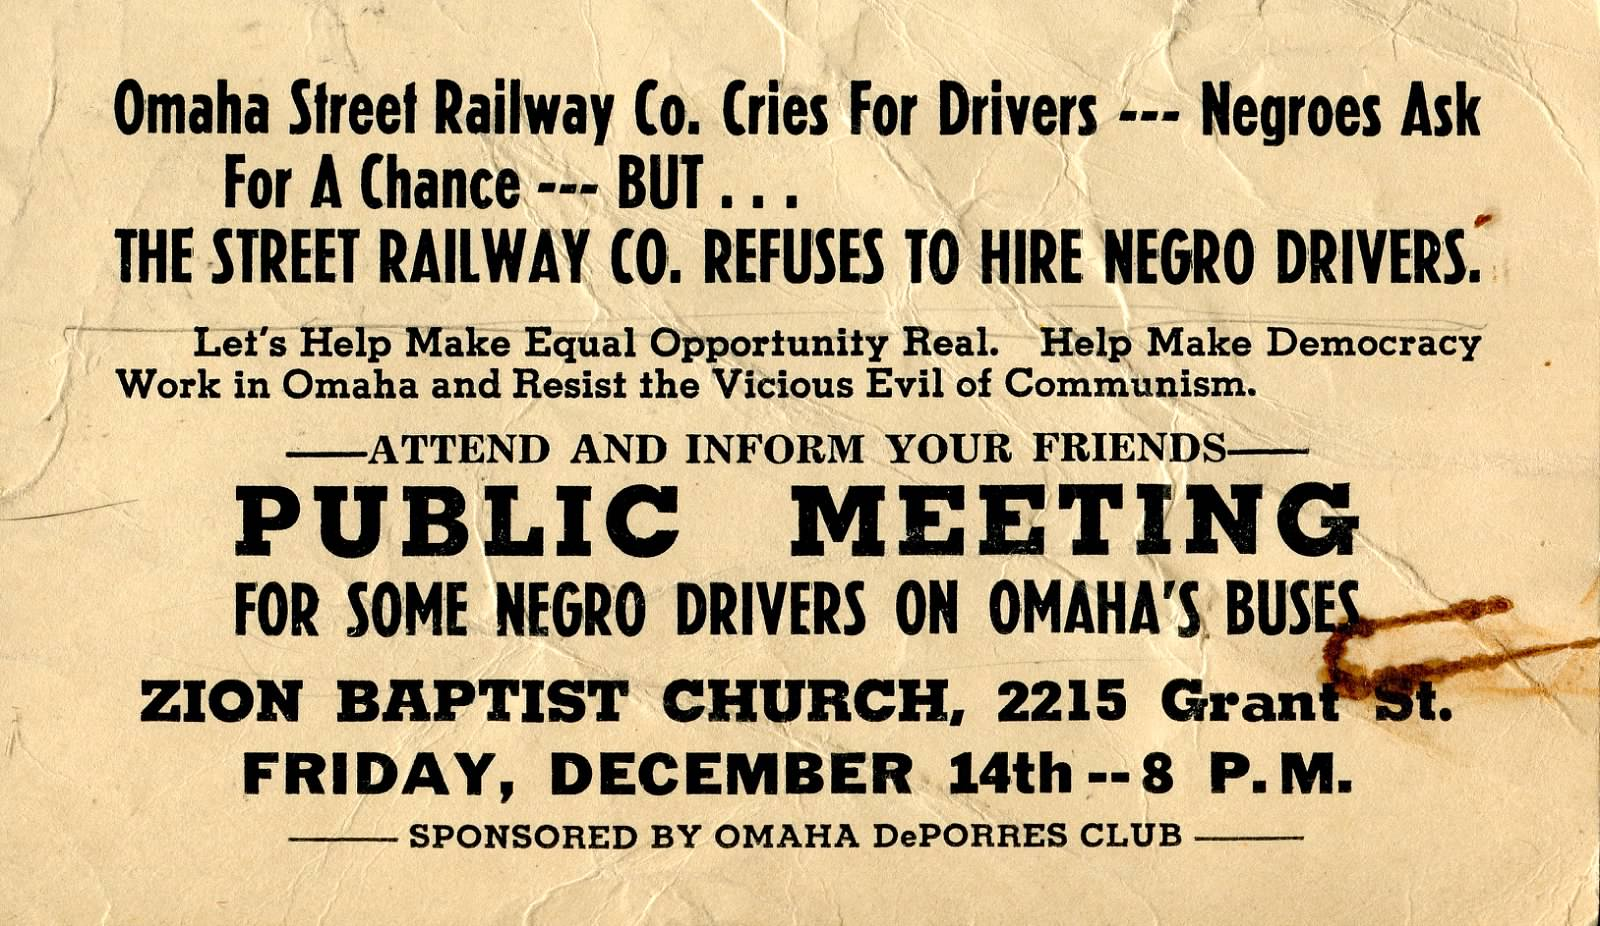 This photo is from The Great Plains Black History Museum collection. The museum's founder, Bertha Calloway, is a former member of the Deporres club. This is an announcement from the club asking for support of their campaign to allow black drivers.